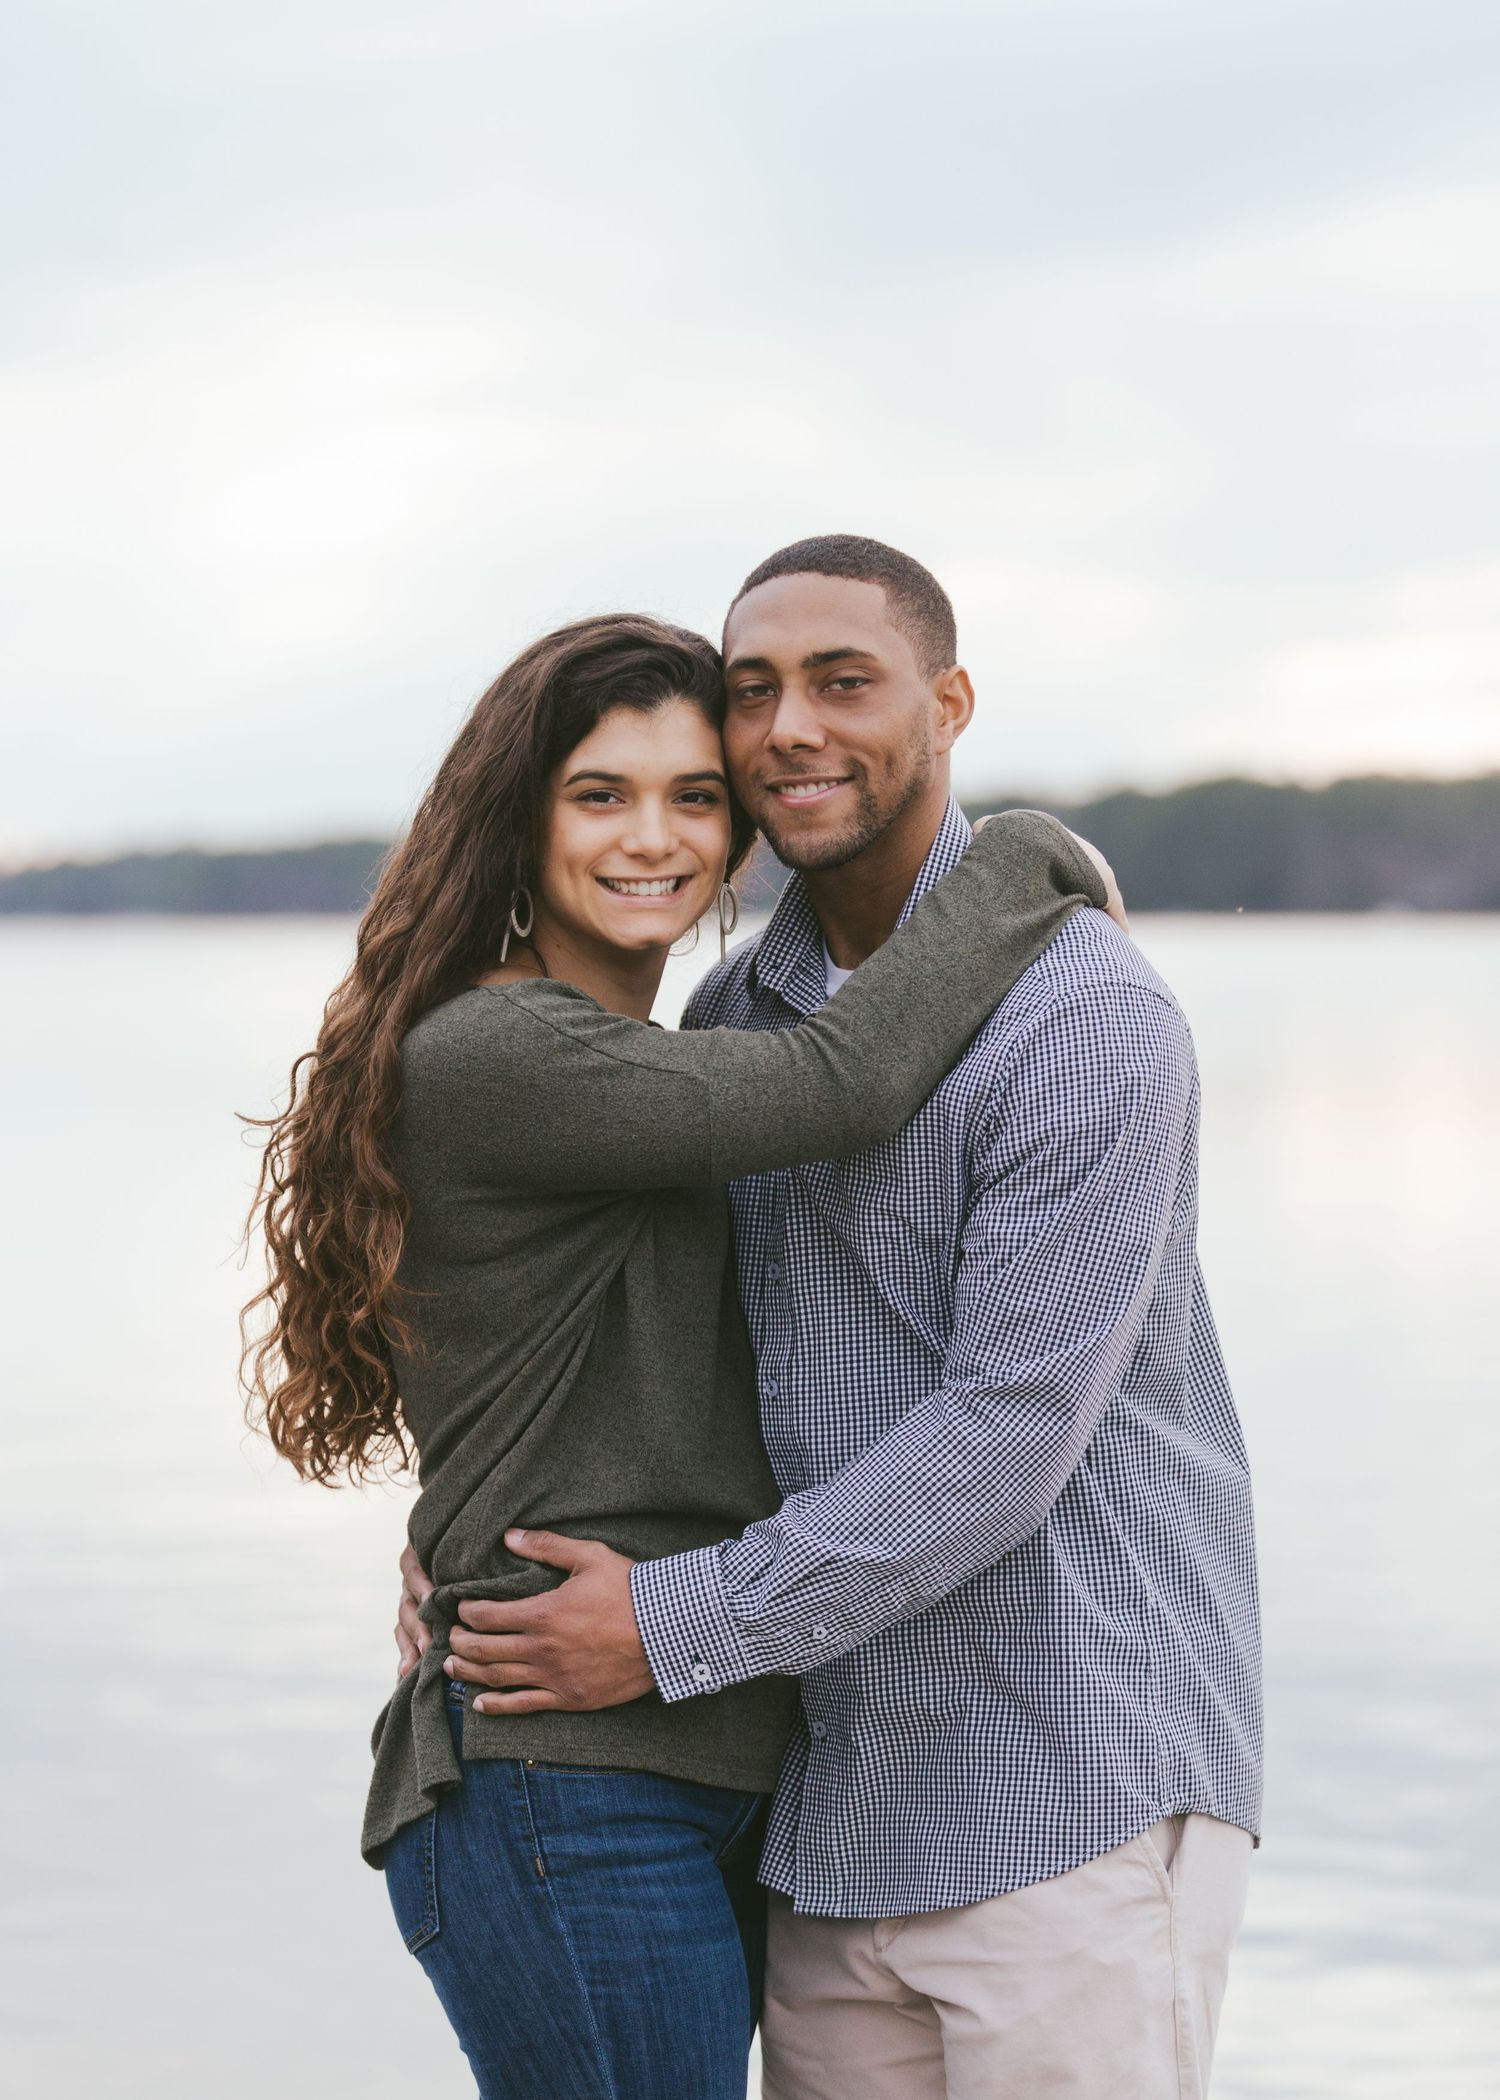 corona virus Covid-19 engagement wedding photographer